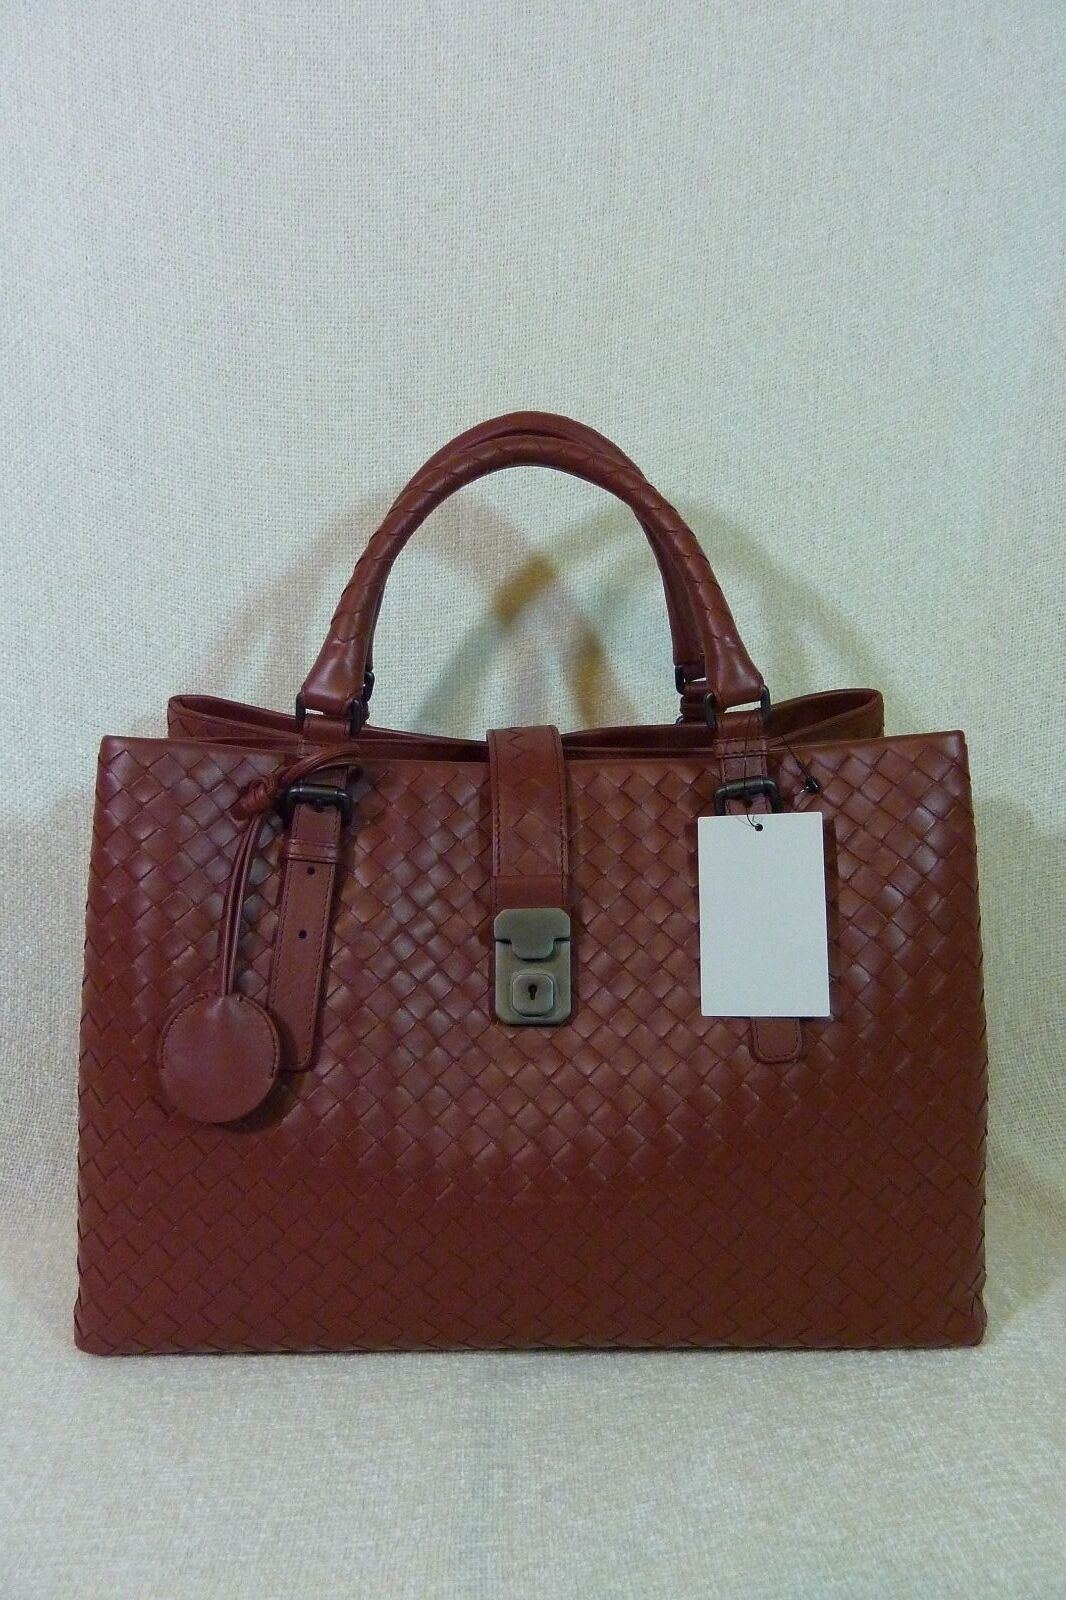 AUTH NWT Bottega Veneta Medium Roma Bag In Russet Intrecciato Calf Leather image 4